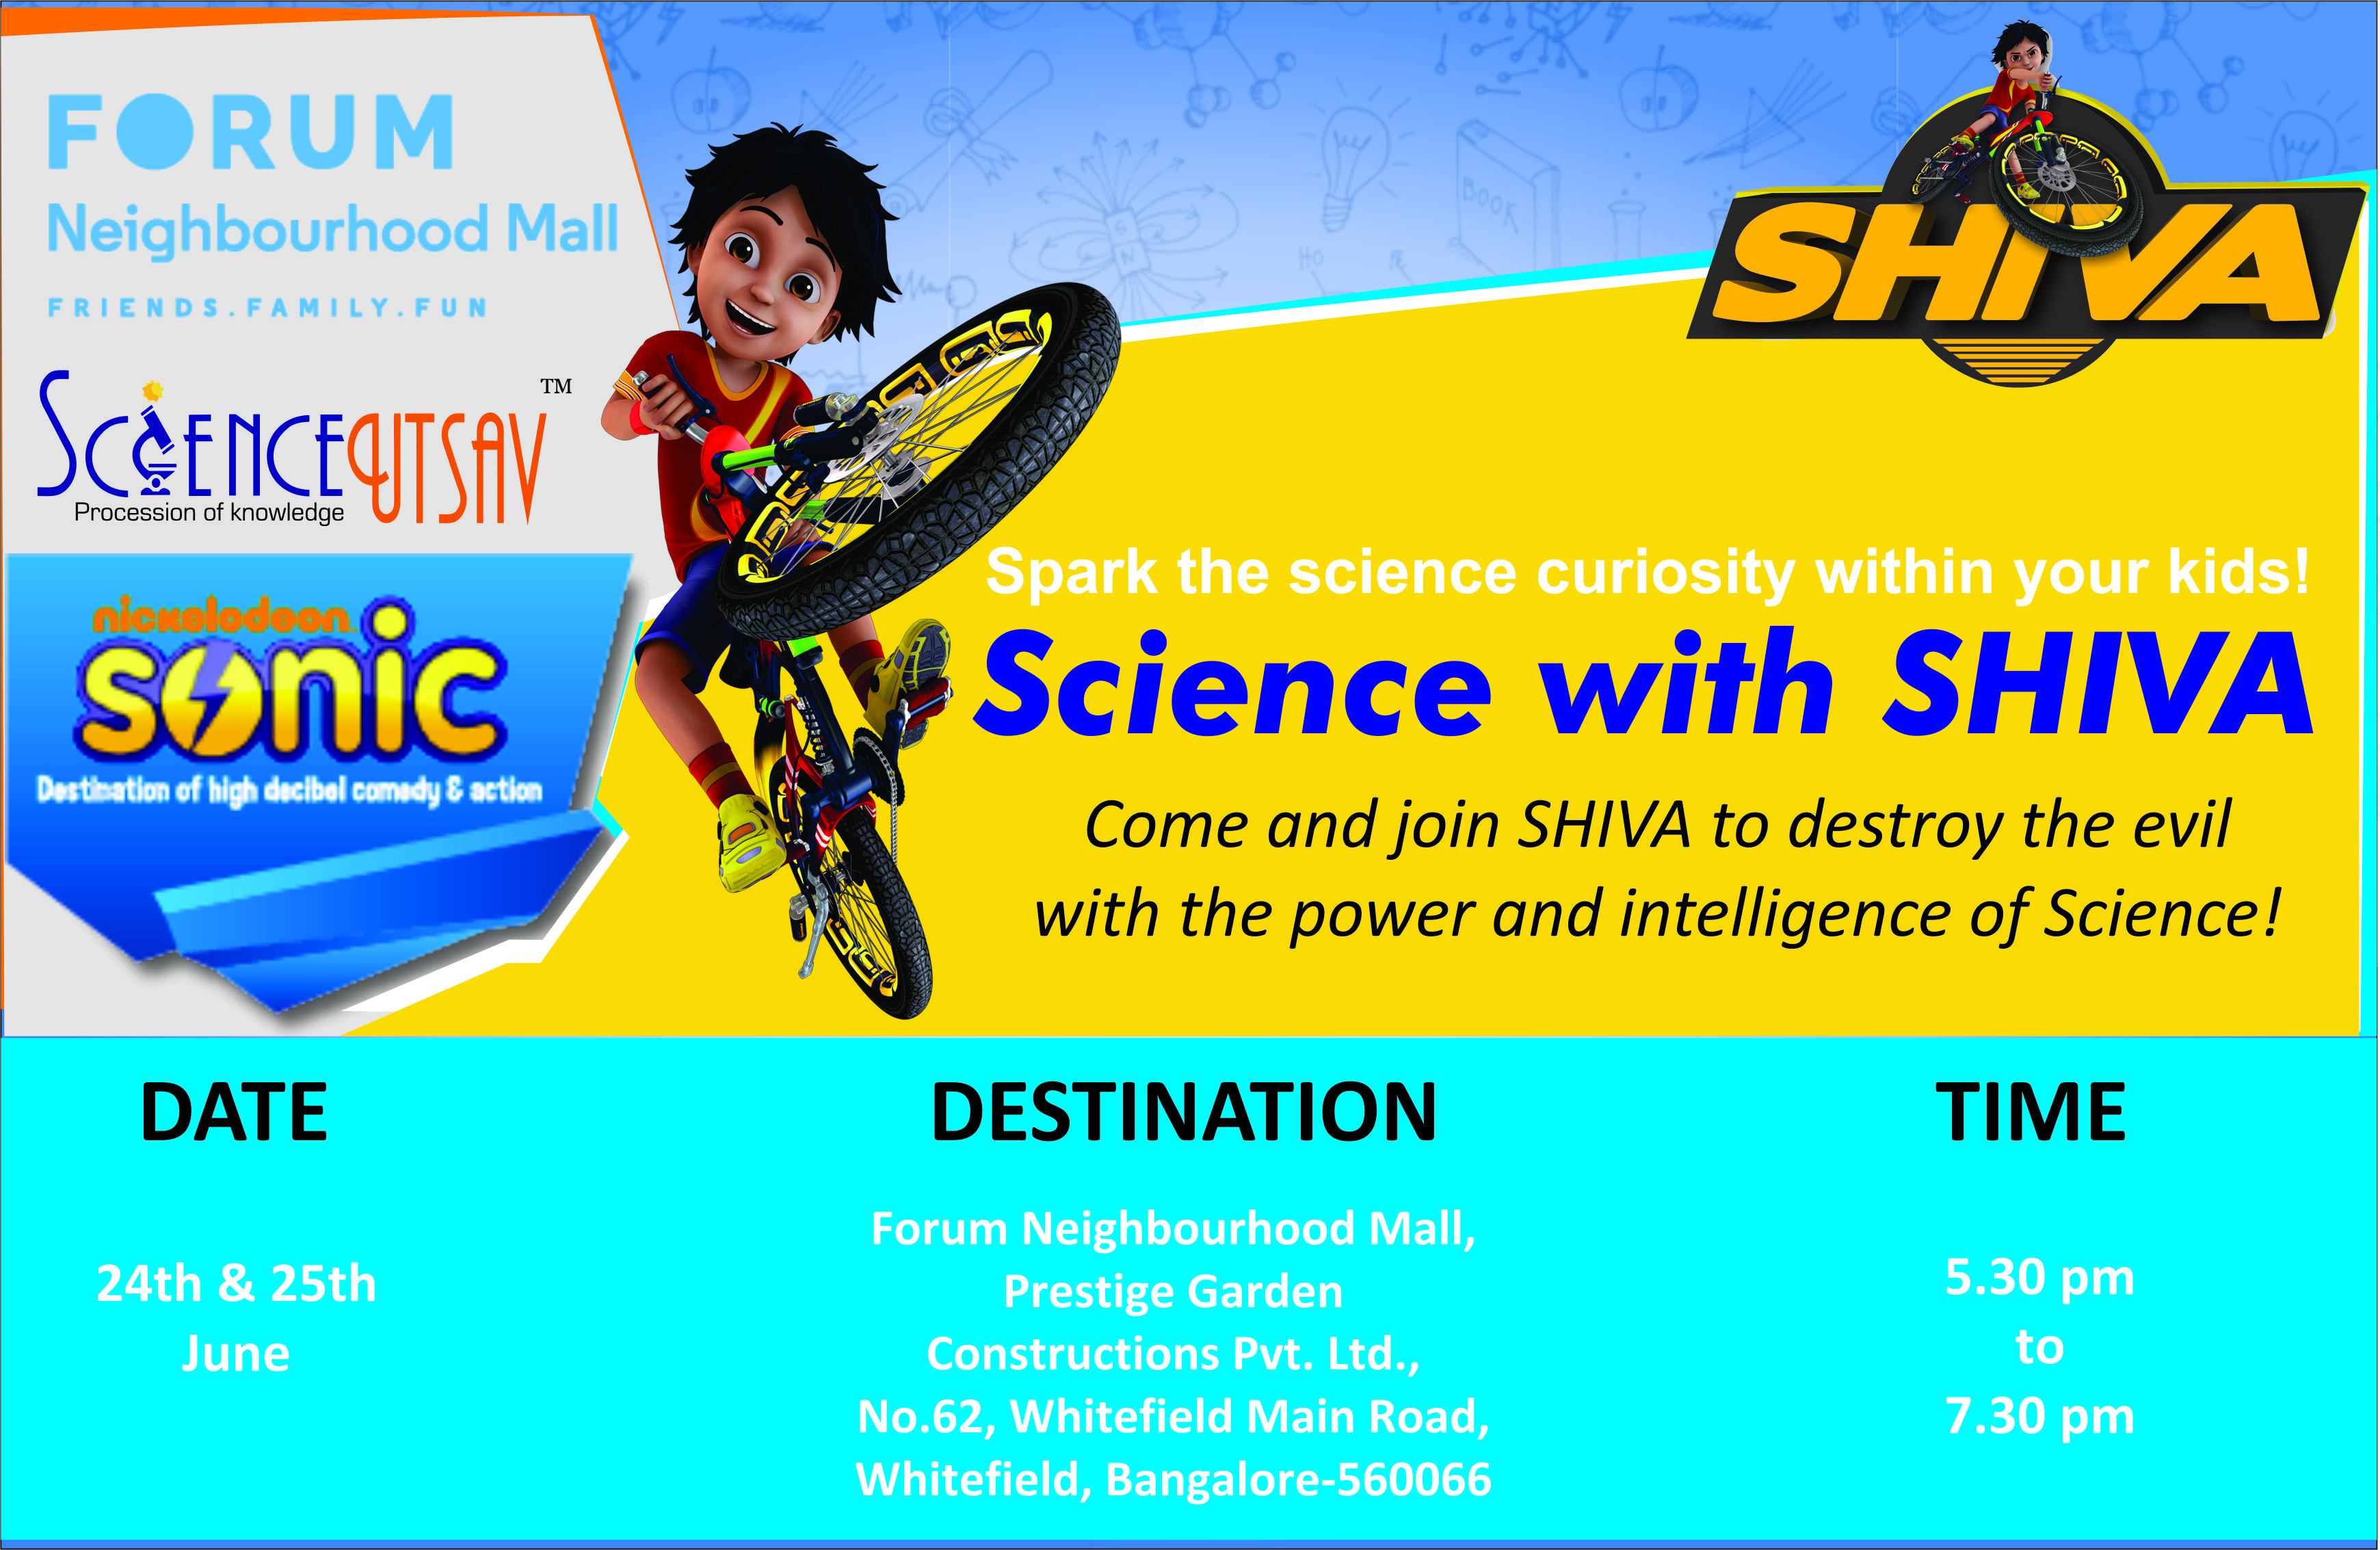 ScienceUtsav Science with Shiva